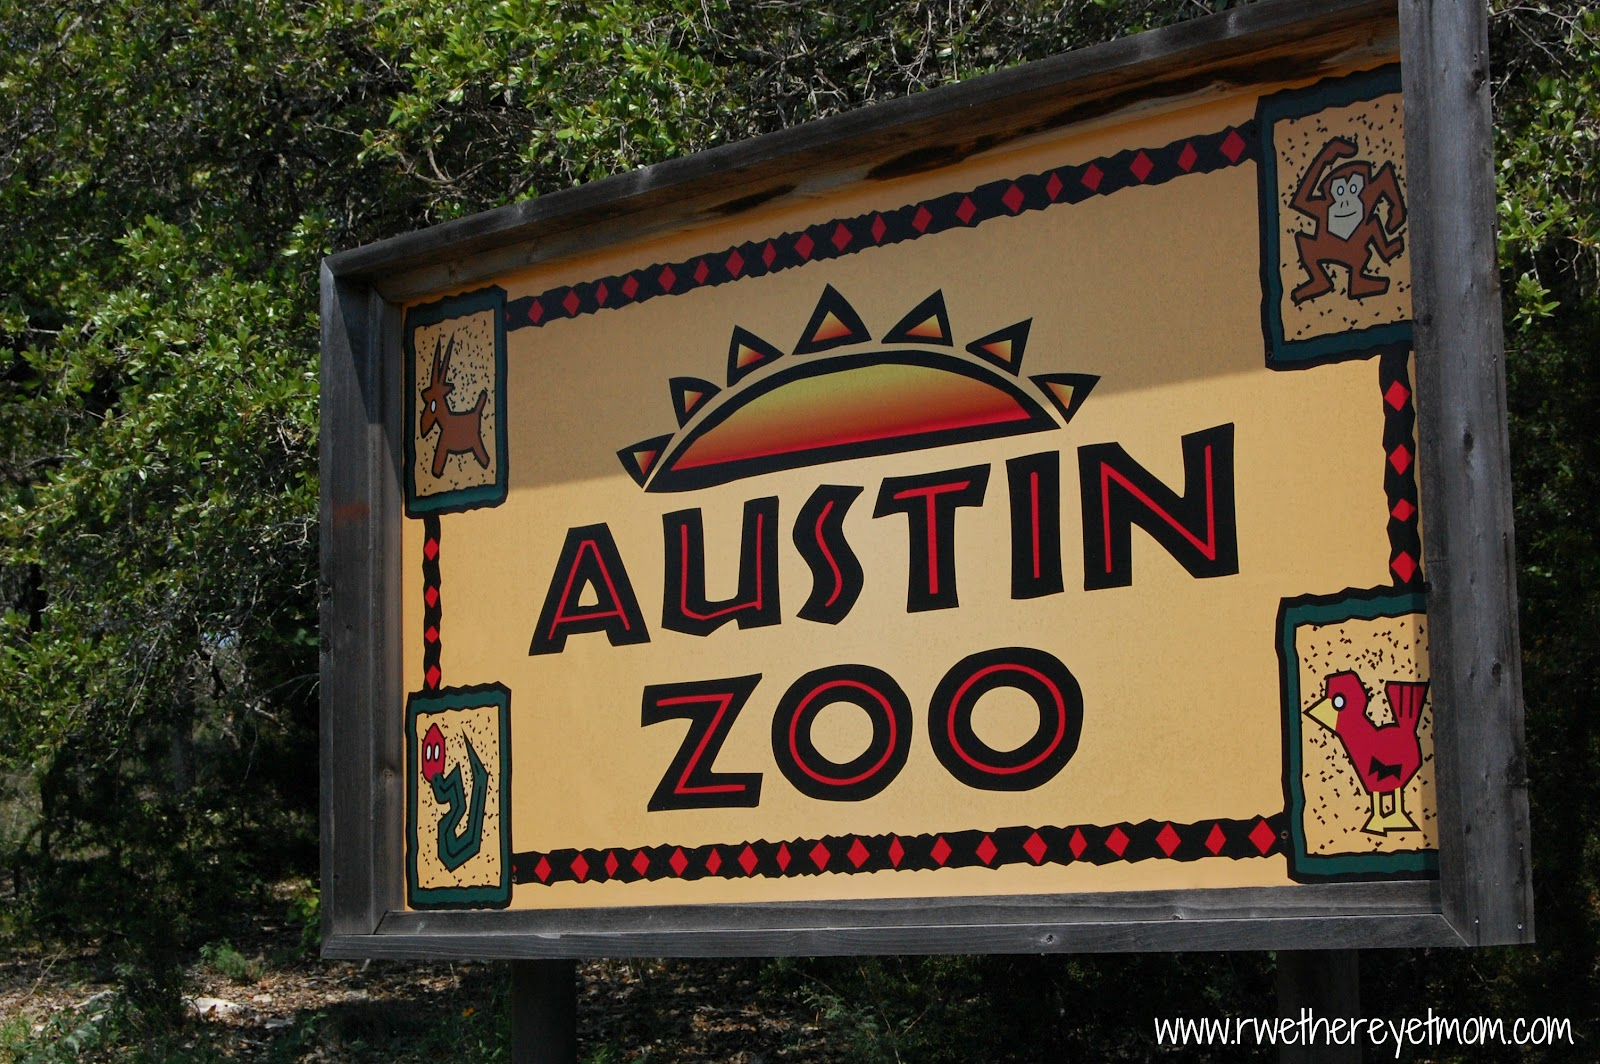 The sign for austin zoo